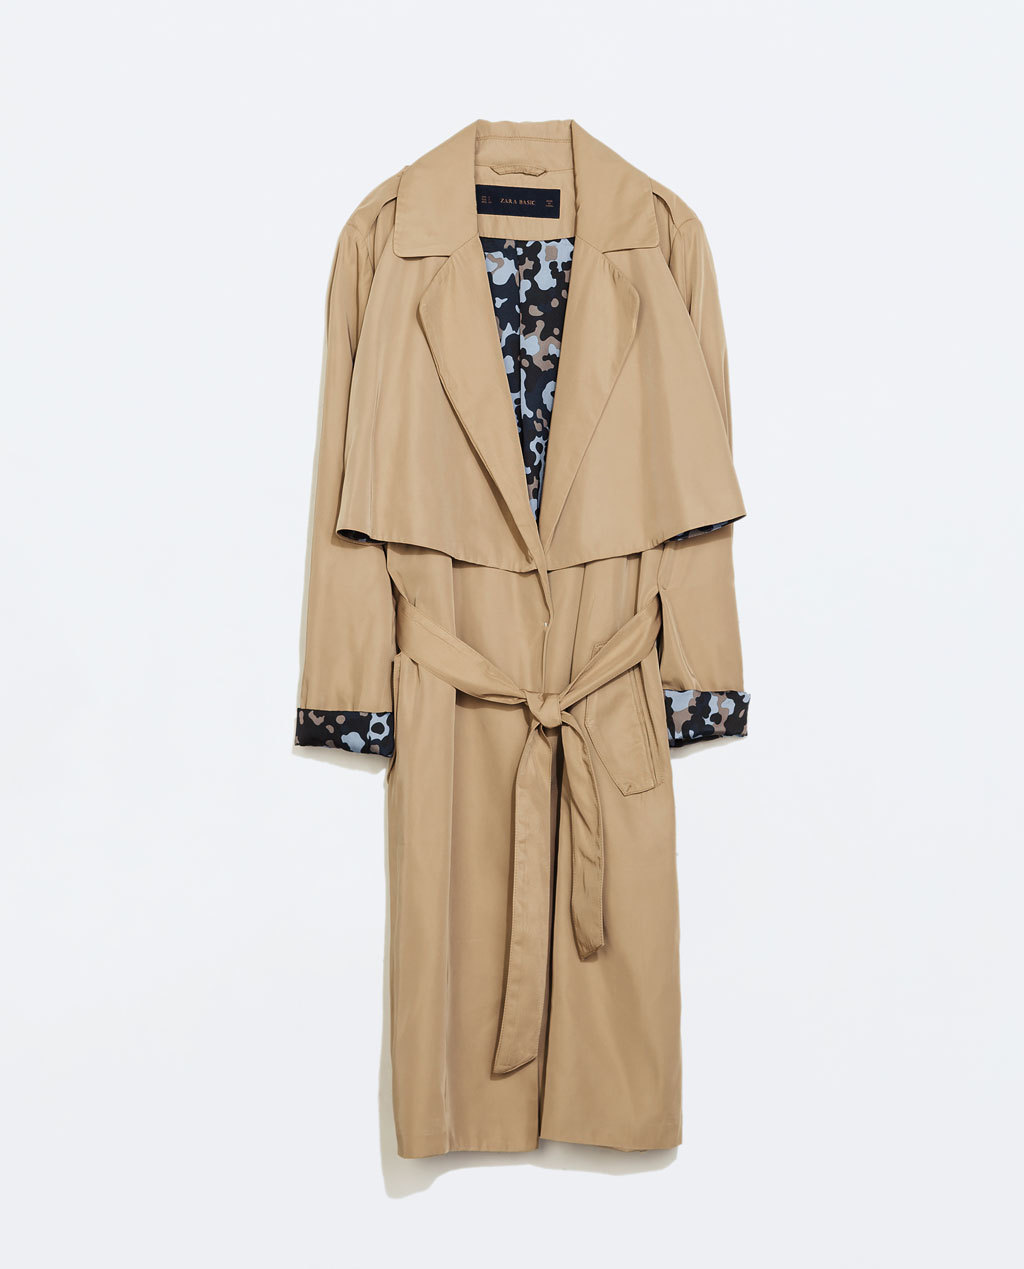 Flowy Trenchcoat With Camouflage Lining - pattern: plain; style: trench coat; collar: standard lapel/rever collar; length: mid thigh; predominant colour: stone; occasions: casual, work; fit: tailored/fitted; fibres: polyester/polyamide - 100%; waist detail: belted waist/tie at waist/drawstring; back detail: back vent/flap at back; sleeve length: long sleeve; sleeve style: standard; collar break: low/open; pattern type: fabric; texture group: woven light midweight; season: a/w 2014